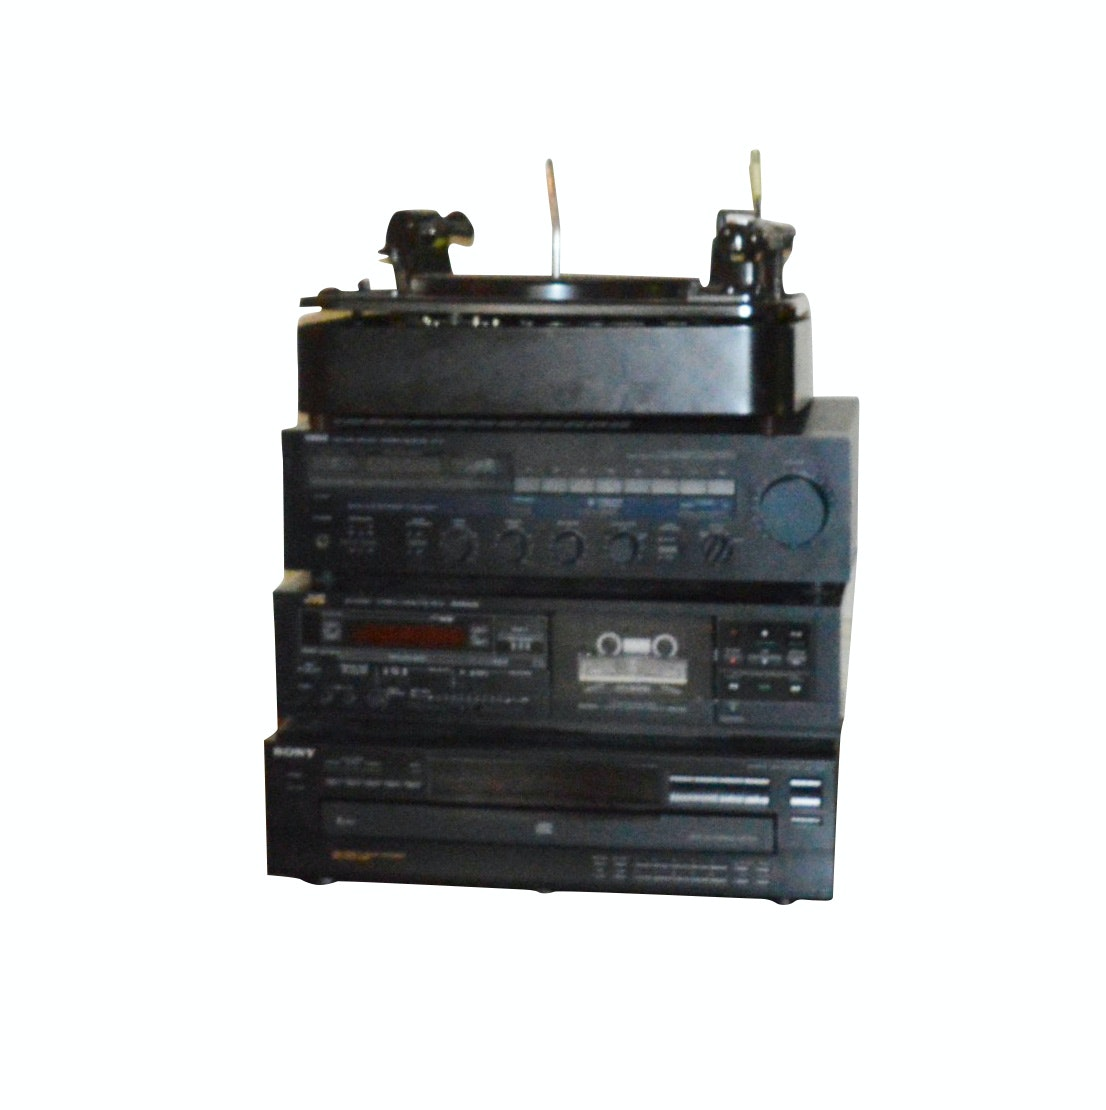 Garrad Turntable, Yamaha Receiver, JVC Cassette Deck and SONY Disc Player